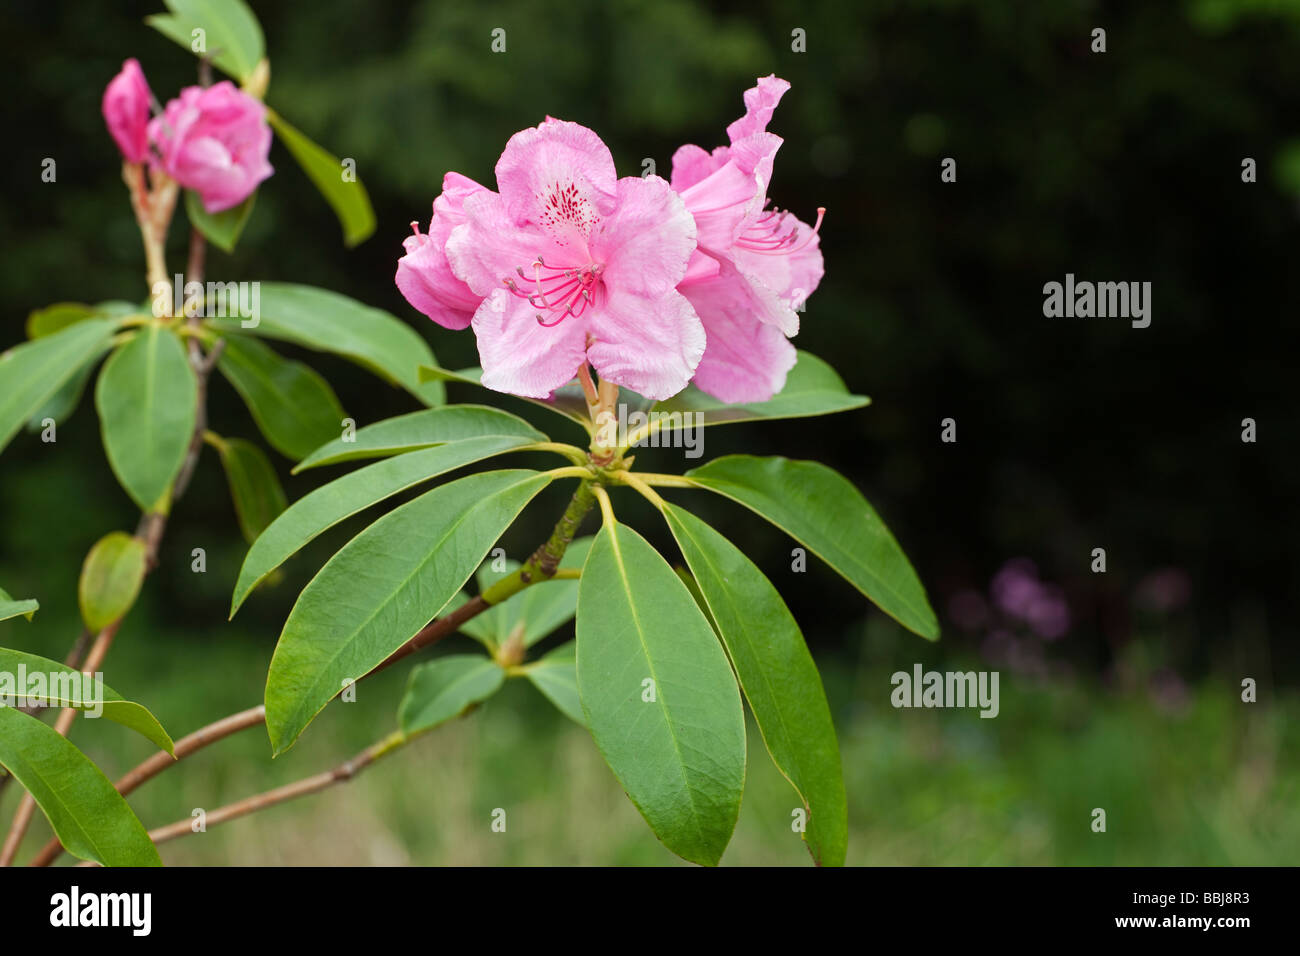 Rhododendron 'Pink Pearl' - Stock Image